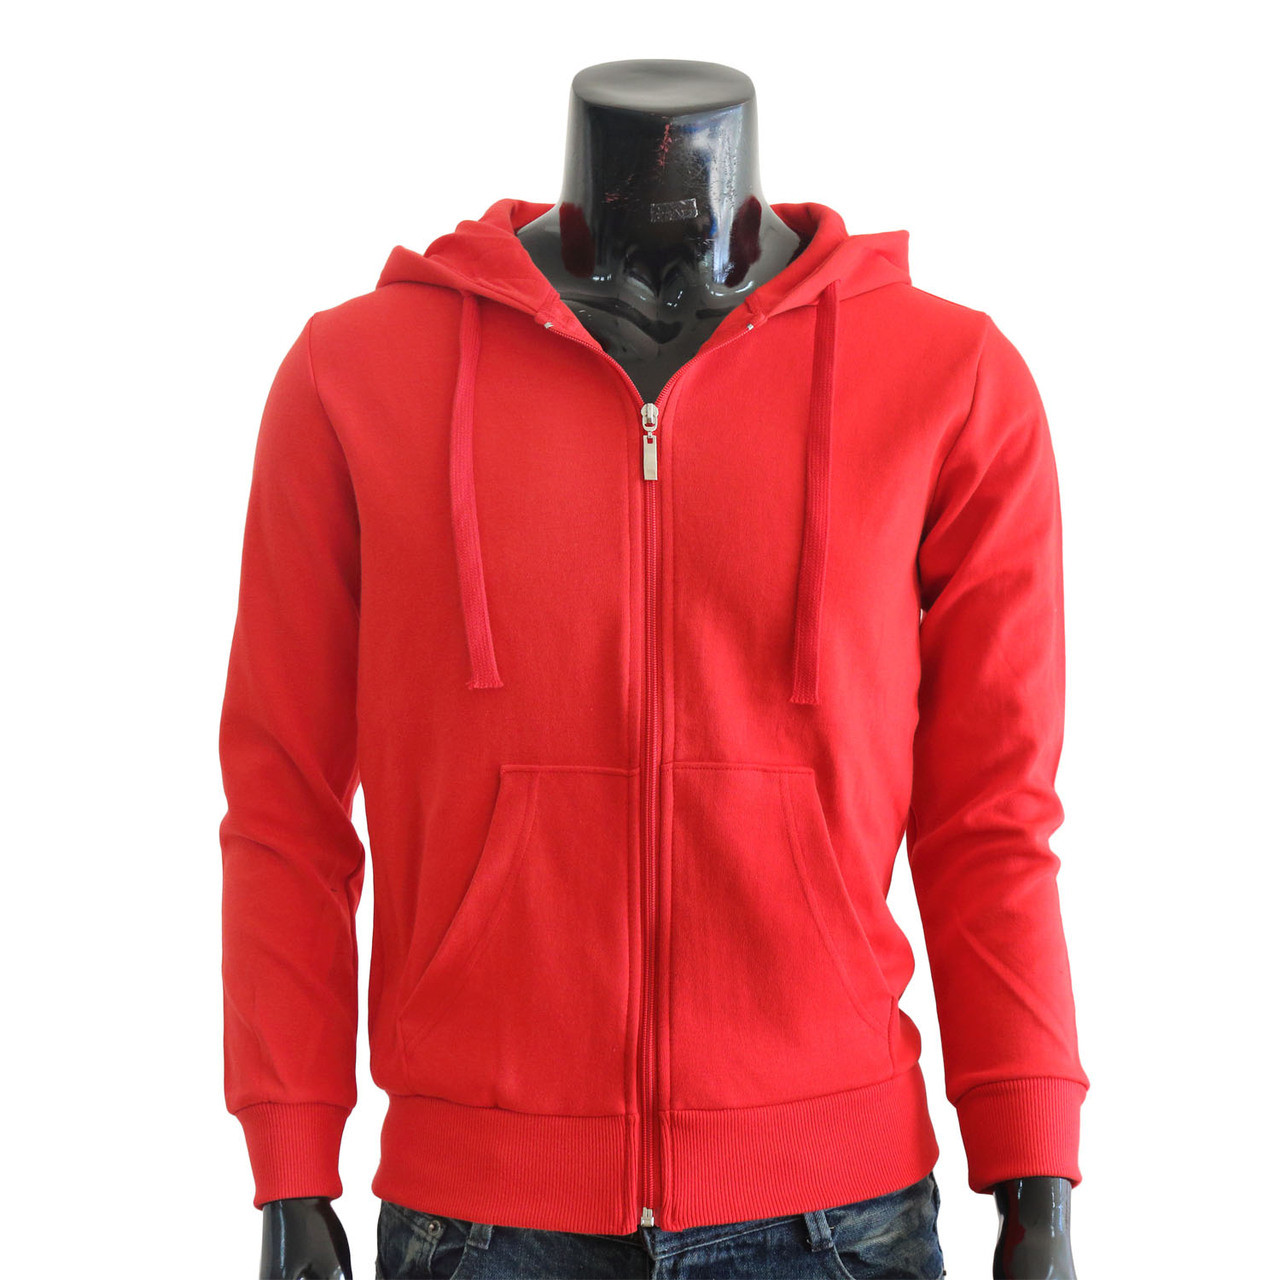 db92c8601bbc red hoodie t-shirt for unisex cotton hoodie t-shirt men hoodie t-shirt